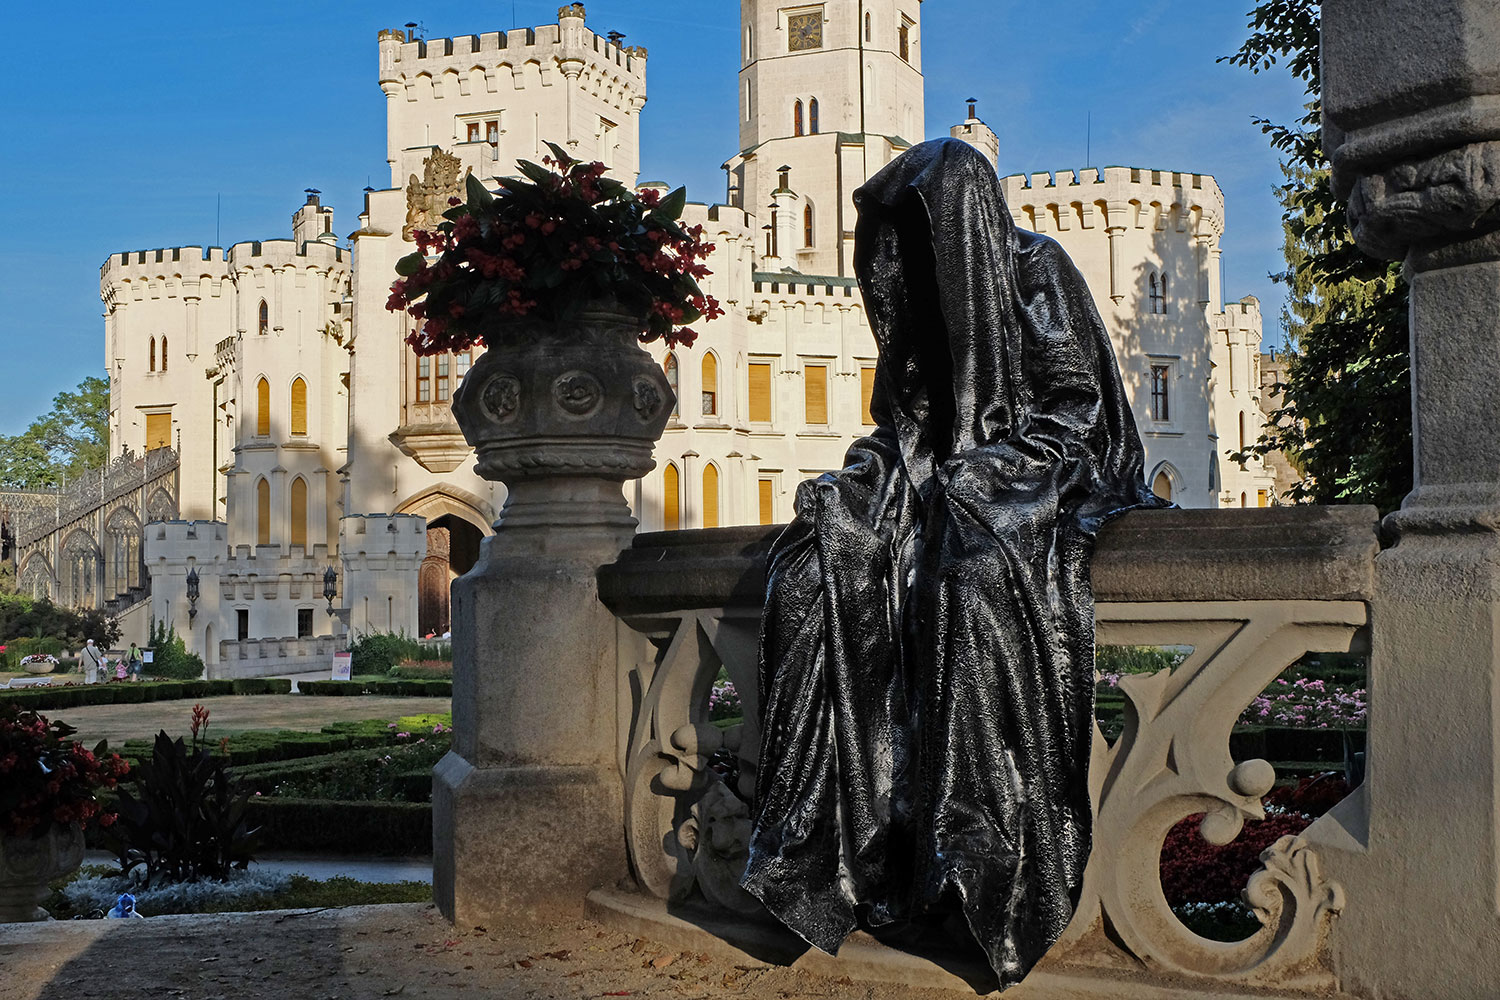 hluboka-castle--czech-republic-guardians-of-time-manfred-kili-kielnhofer-contemporary-fine-art-sculpture-statue-arts-design-modern-photography-artfund-artshow-pro-6757y